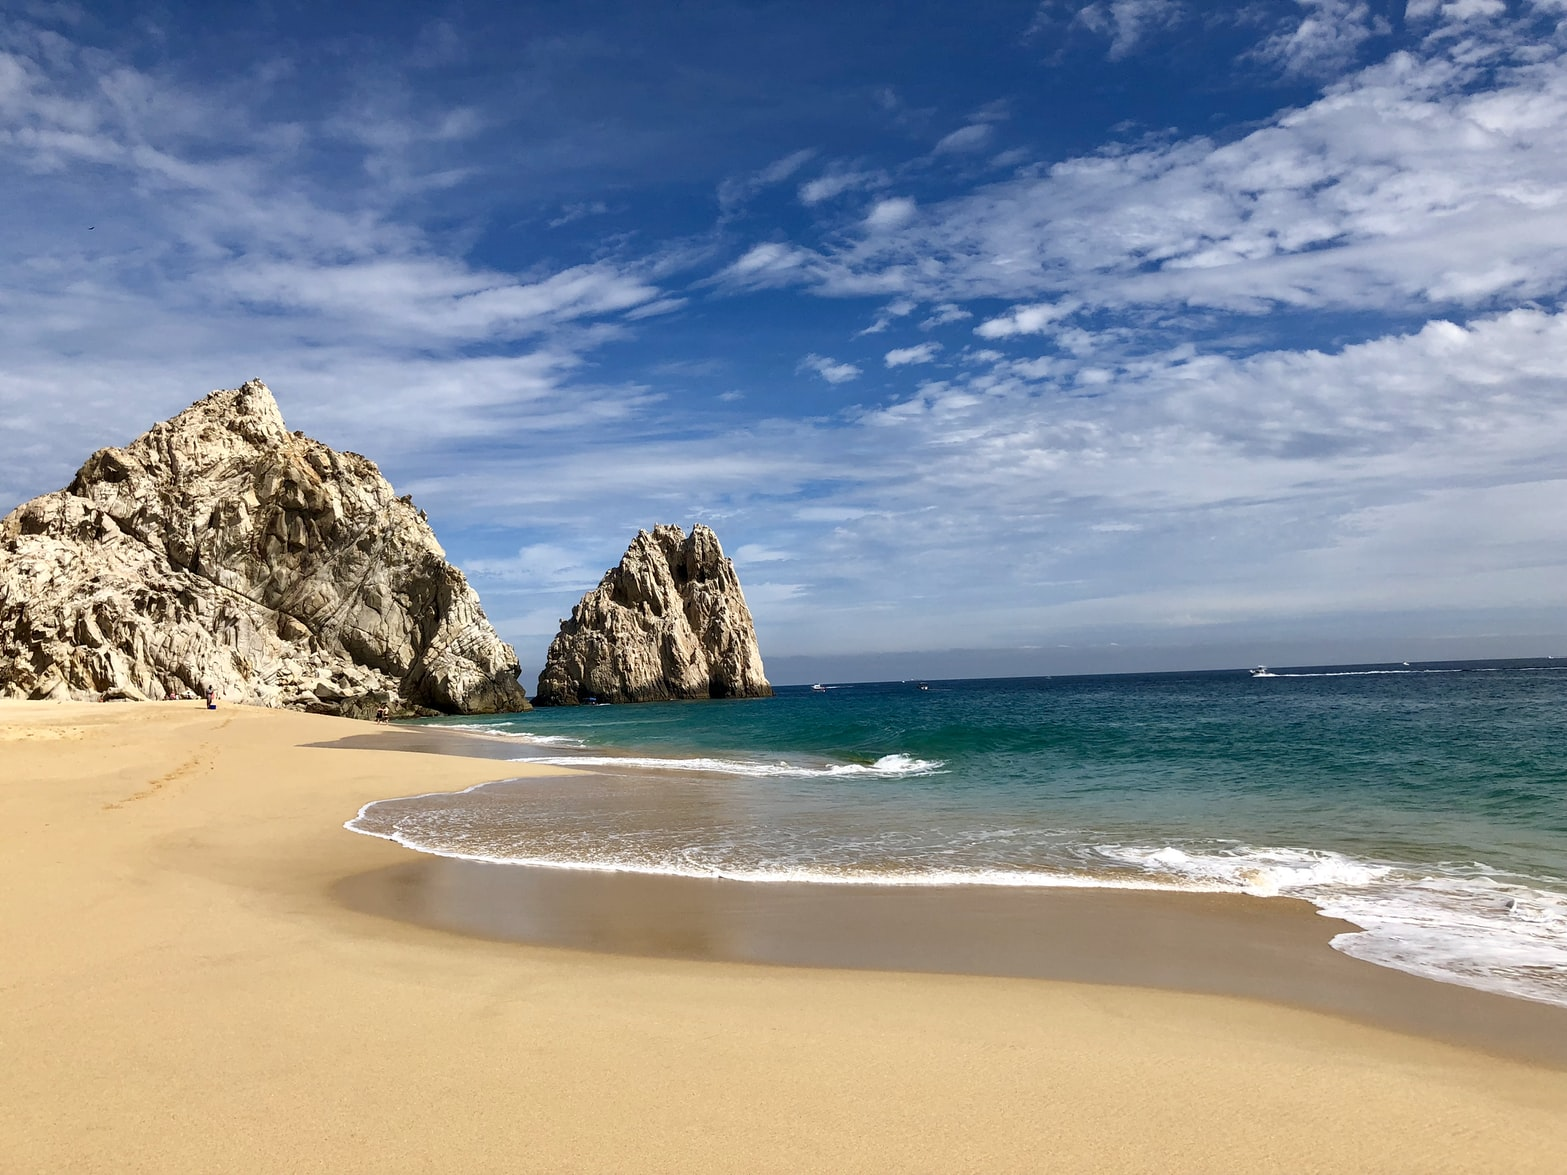 Los Cabos beach and rock